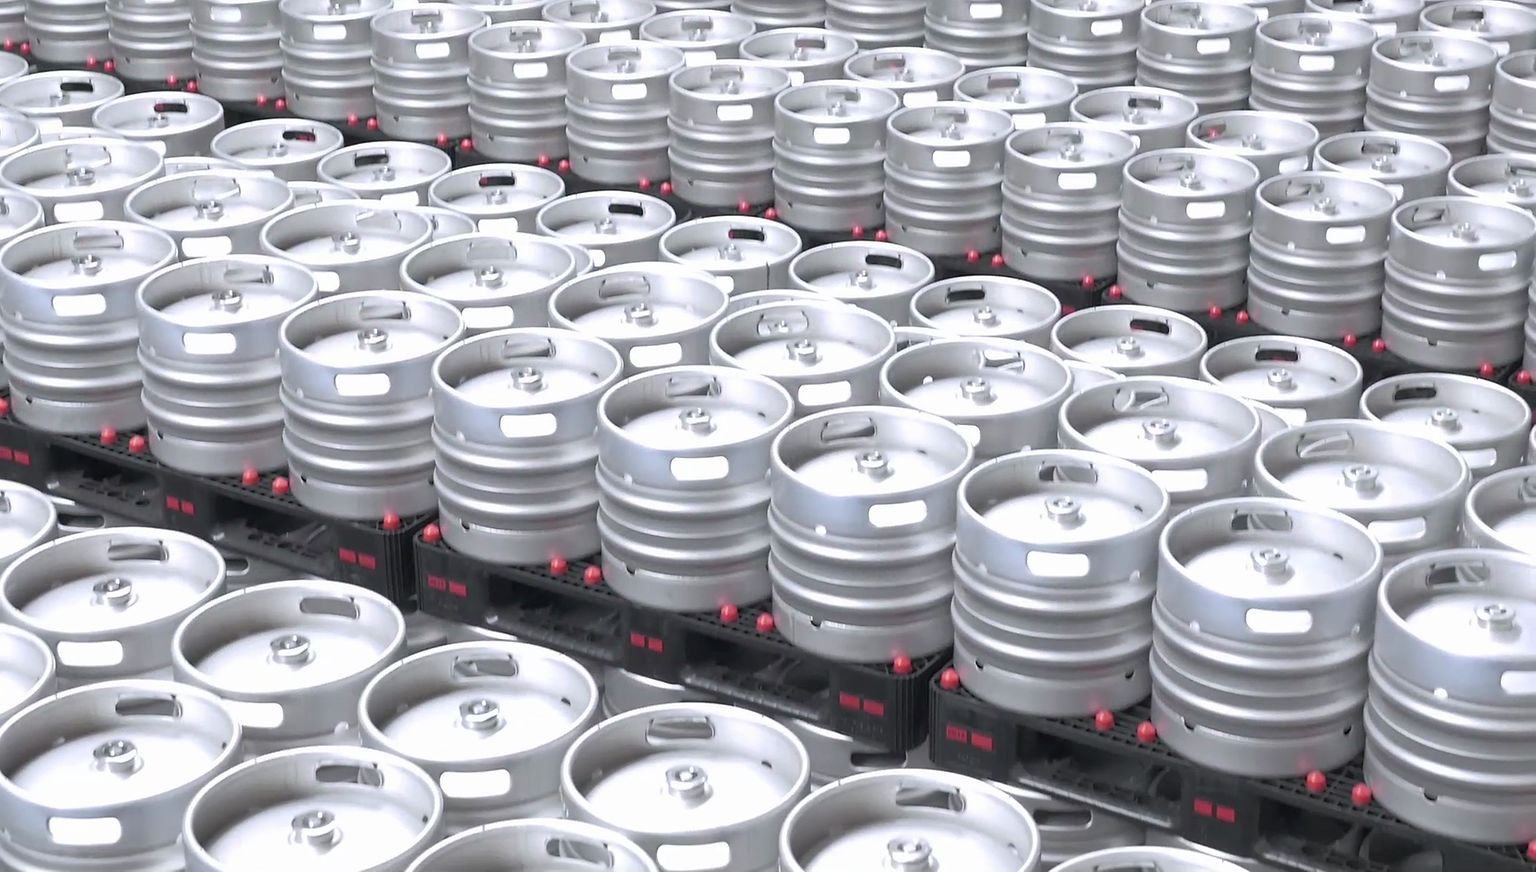 The new keg production plant of Entinox at Zaragoza, Spain, has a capacity for 450,000 barrels per year, made from austenite stainless steel with a surface of 2 square meters per barrel